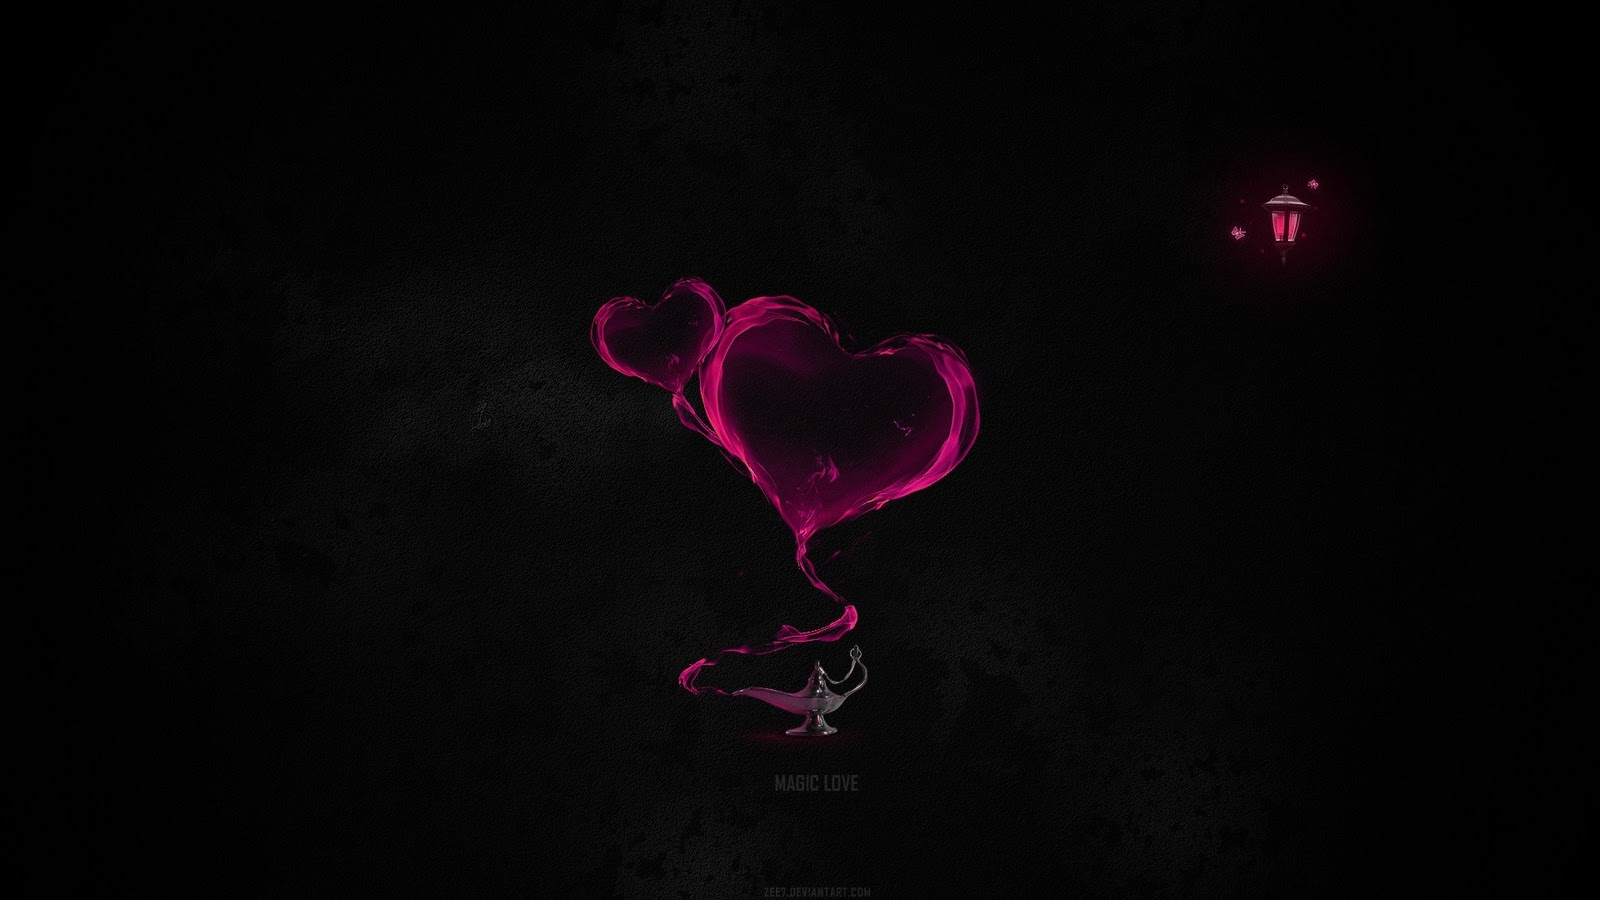 Free 3D Wallpapers Download: Love hd wallpaper, love ...